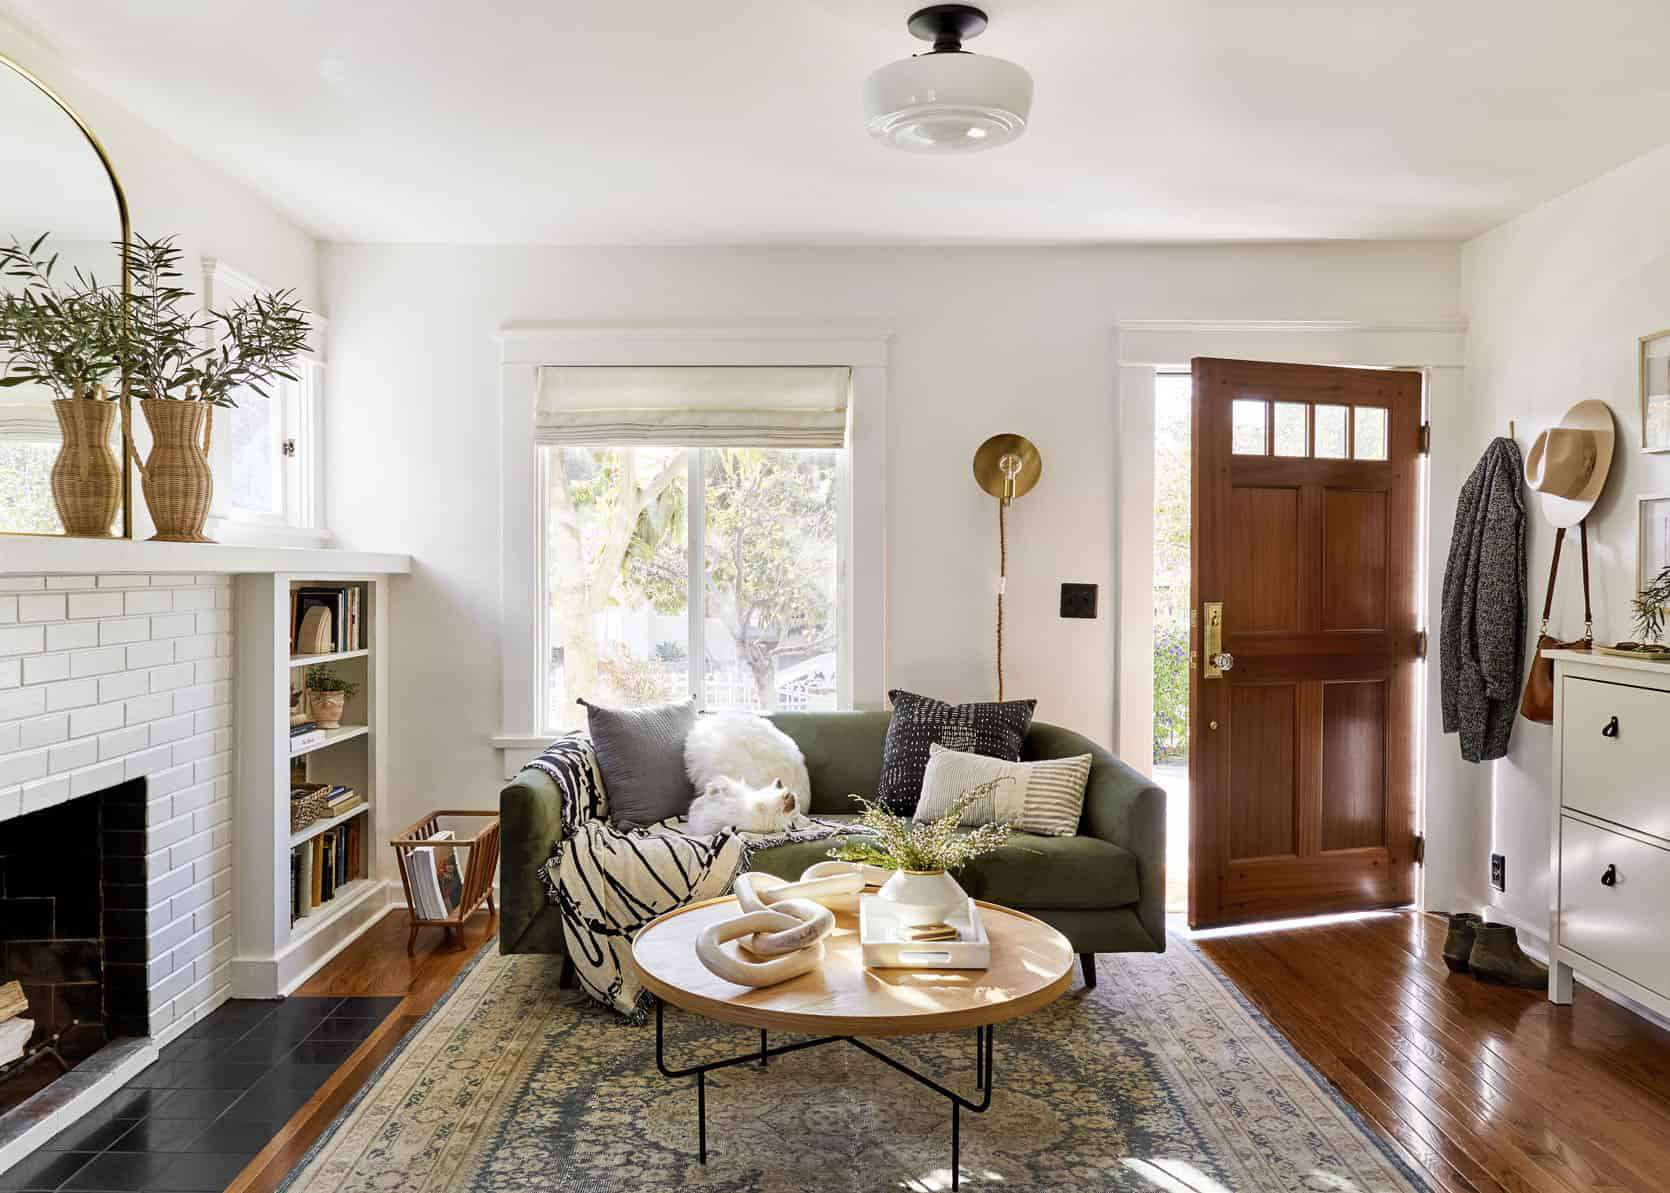 A staged living room featuring plants